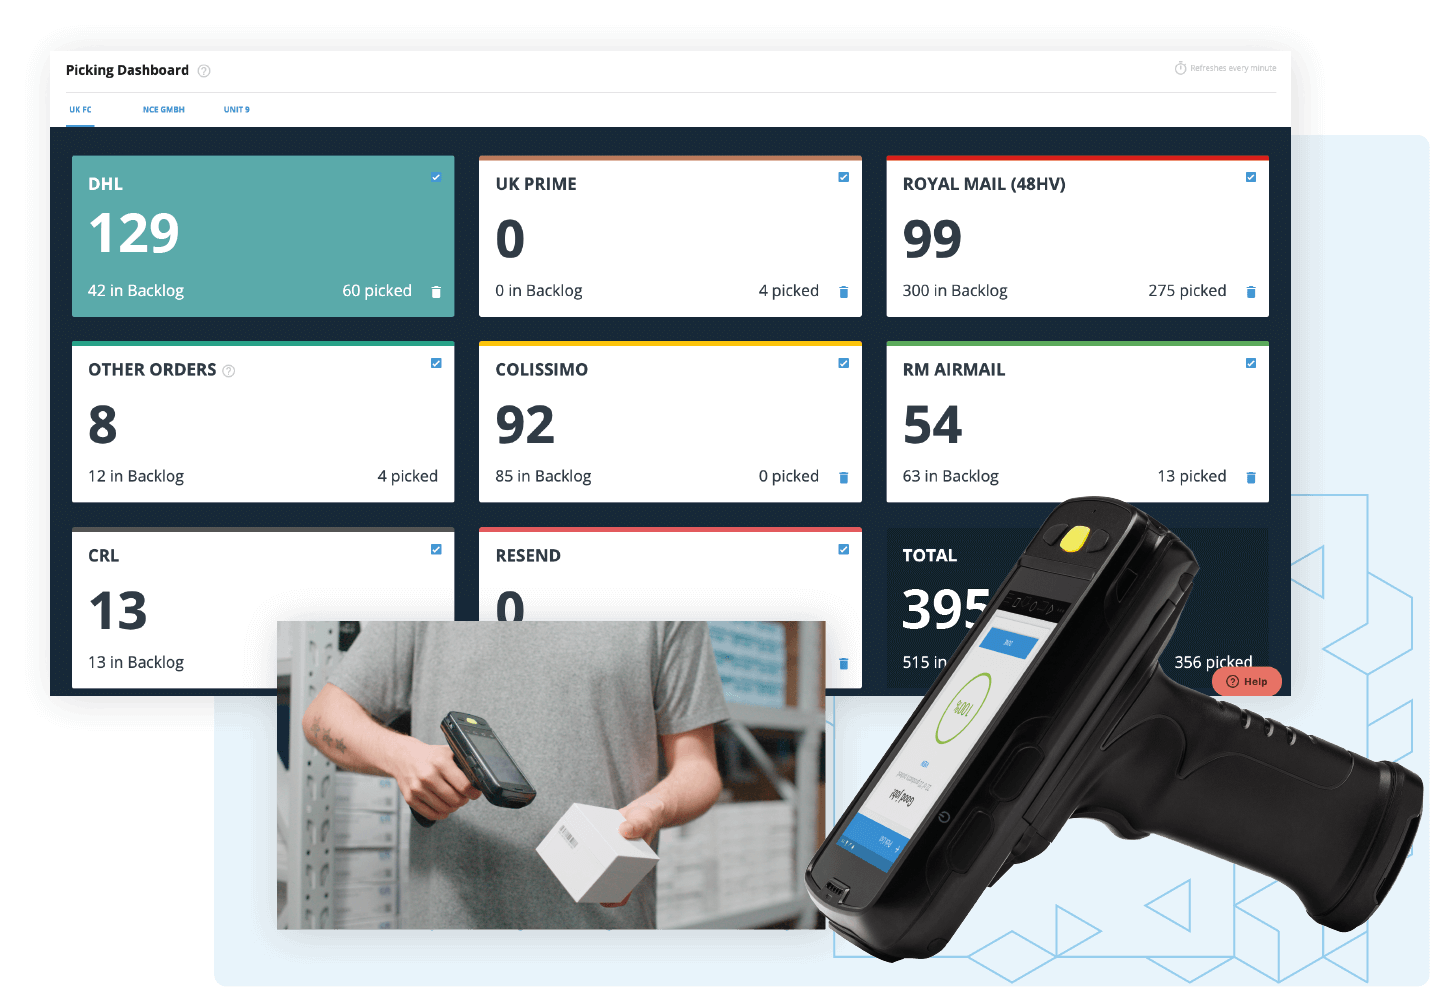 Digital Picking & Packing: Use BigCommerce to sell on your online store, then pick and pack each product quickly & accurately using the Veeqo Scanner